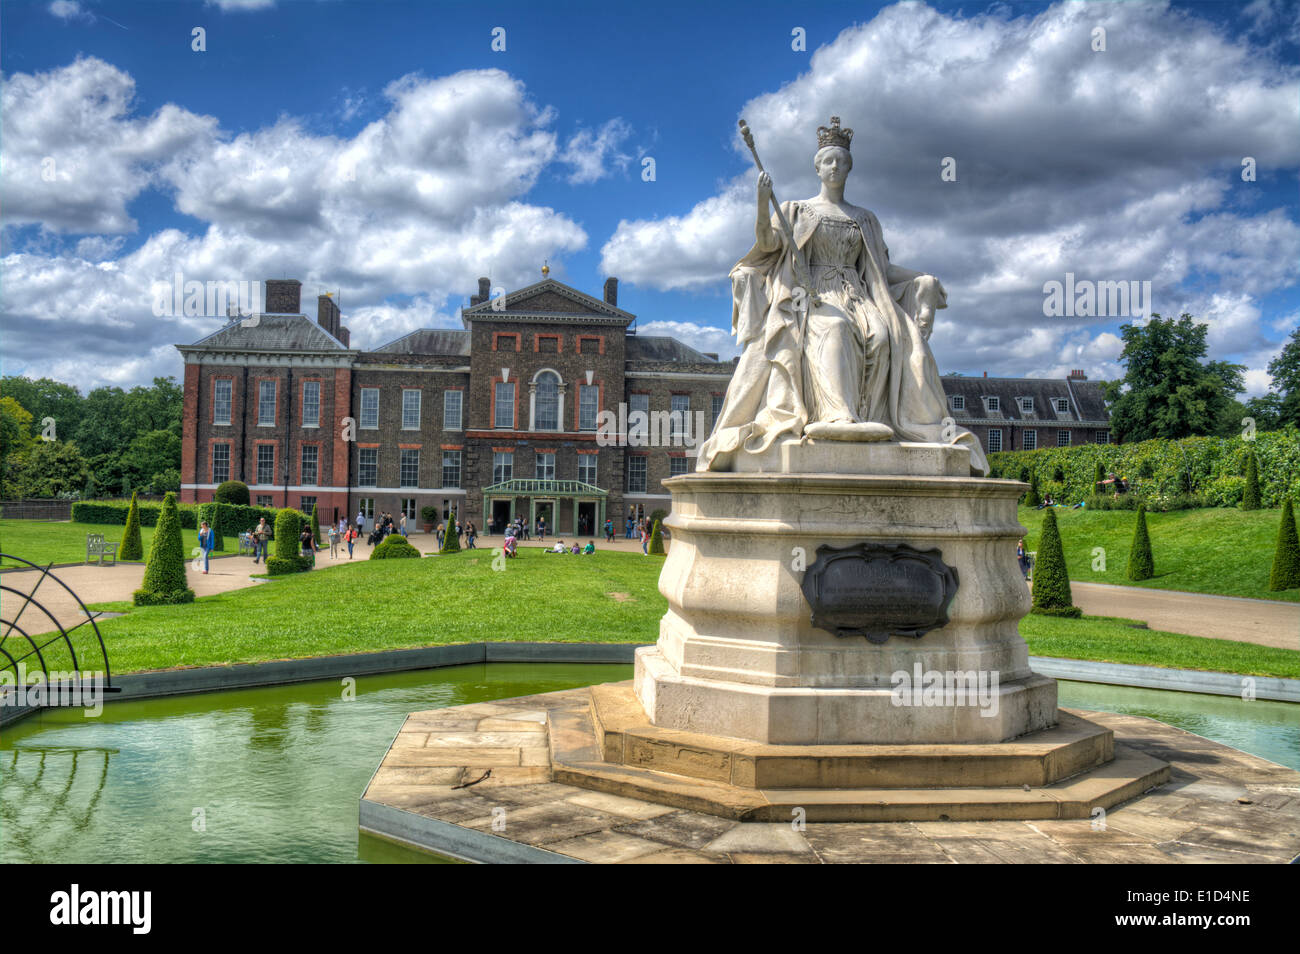 HDR image of A Statue of Queen Victoria outside of Kensington Palace a royal residence set in Kensington Gardens, Stock Photo